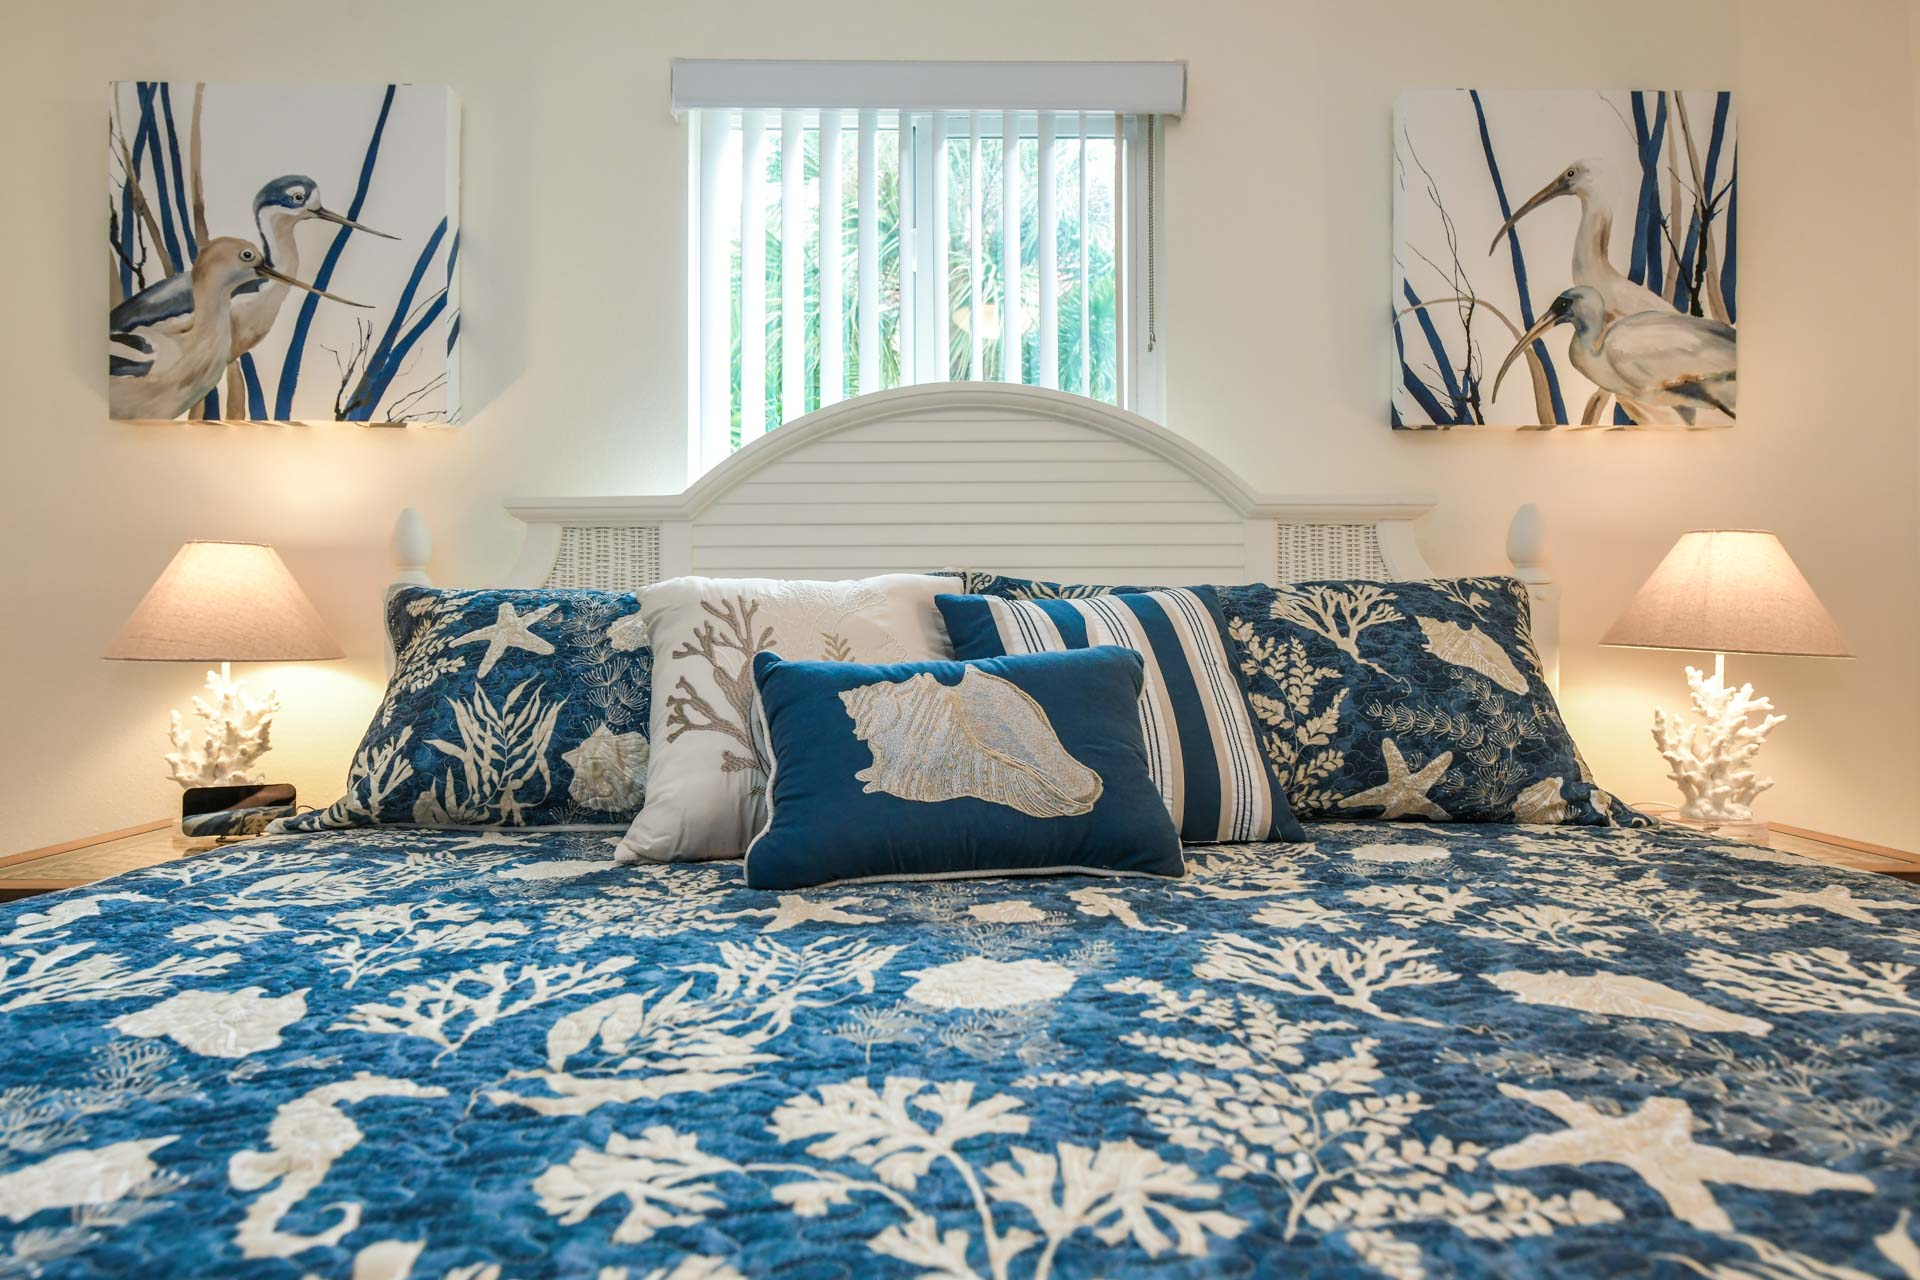 Relax in a spacious king size bed